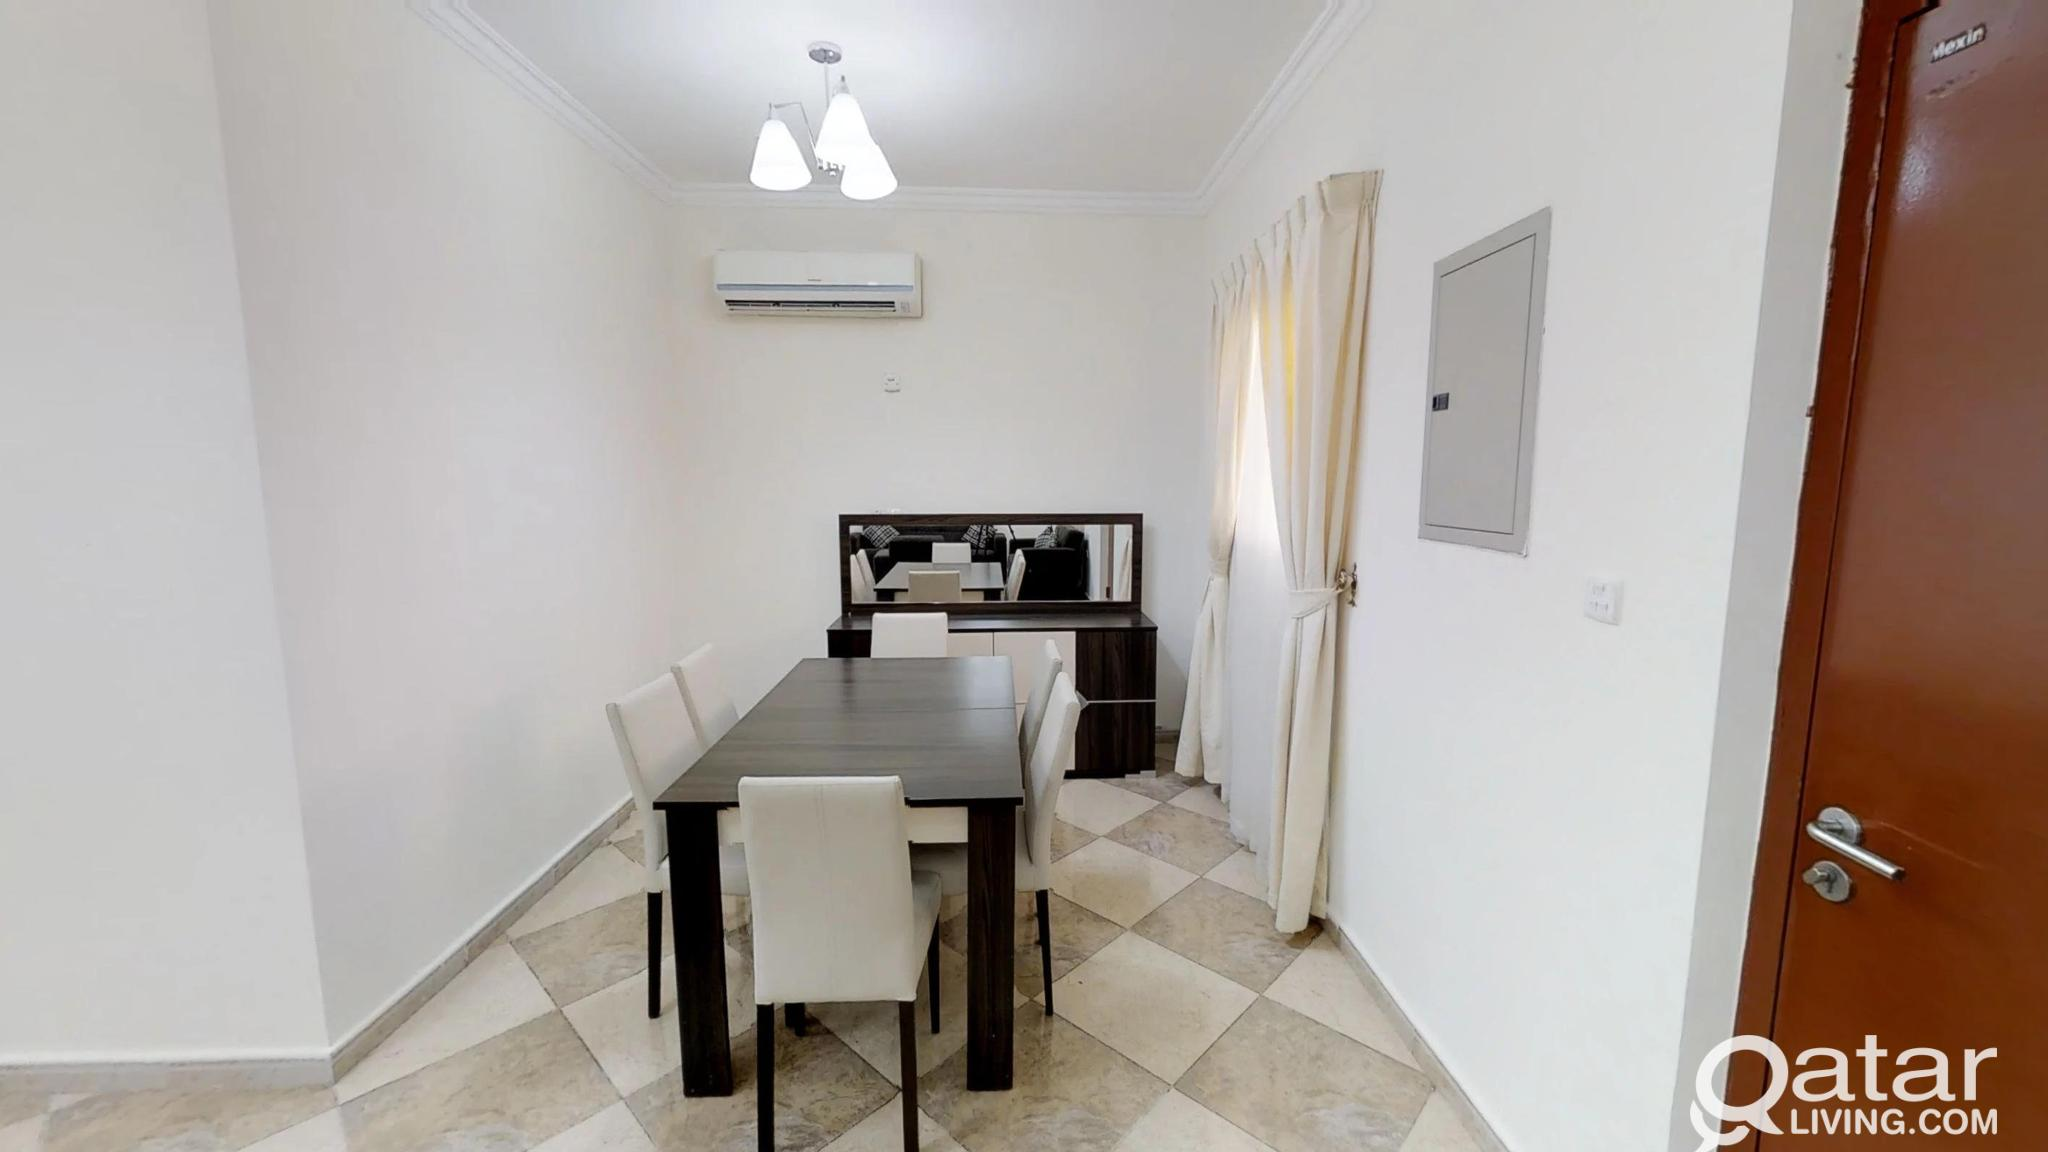 Decent Price for 2-BR Fully Furnished Apartment RH